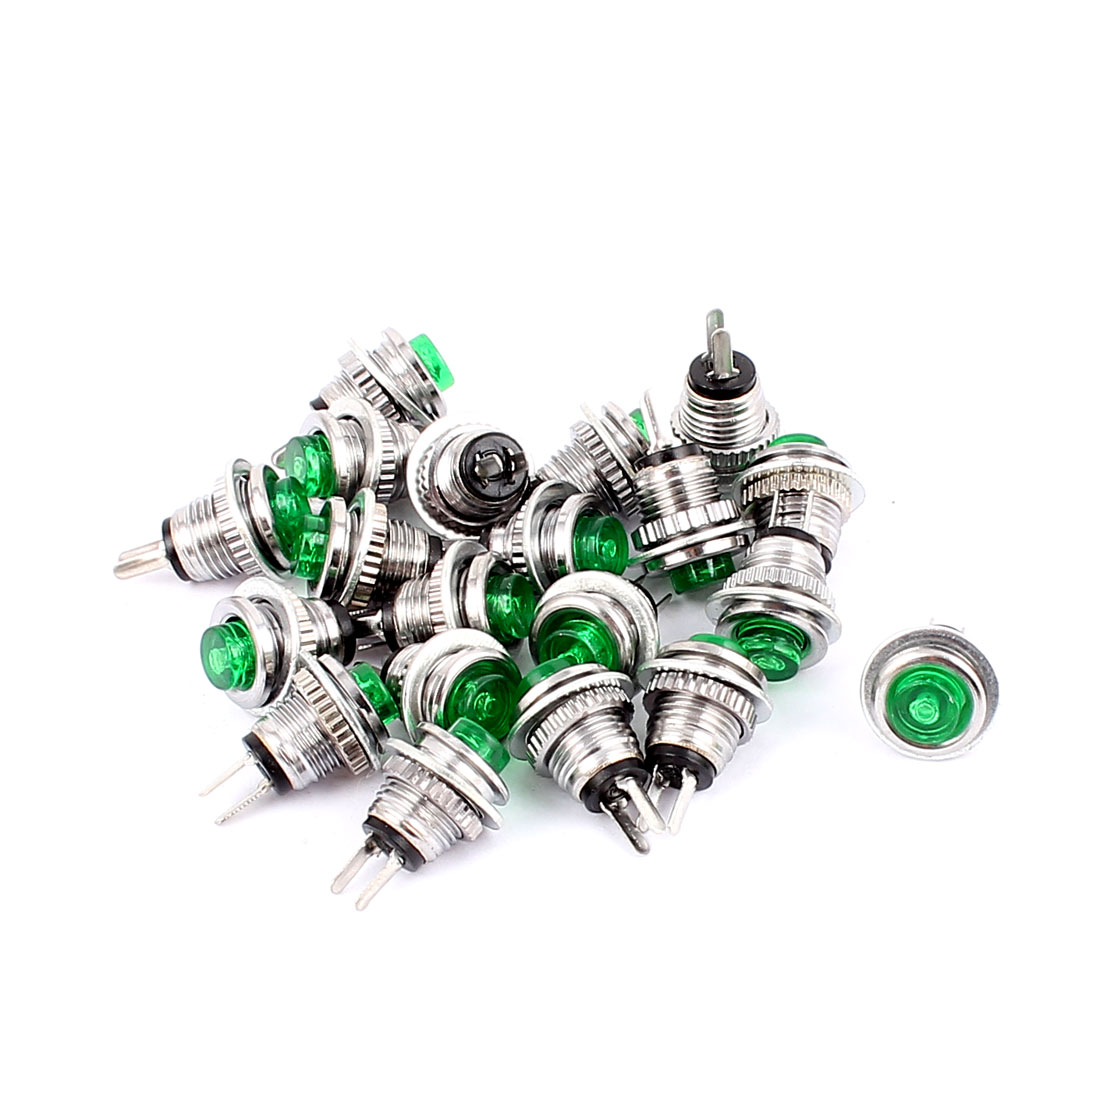 20 Pcs SPST NO Momentary Micro Push Button Switch Green for Electric Torch